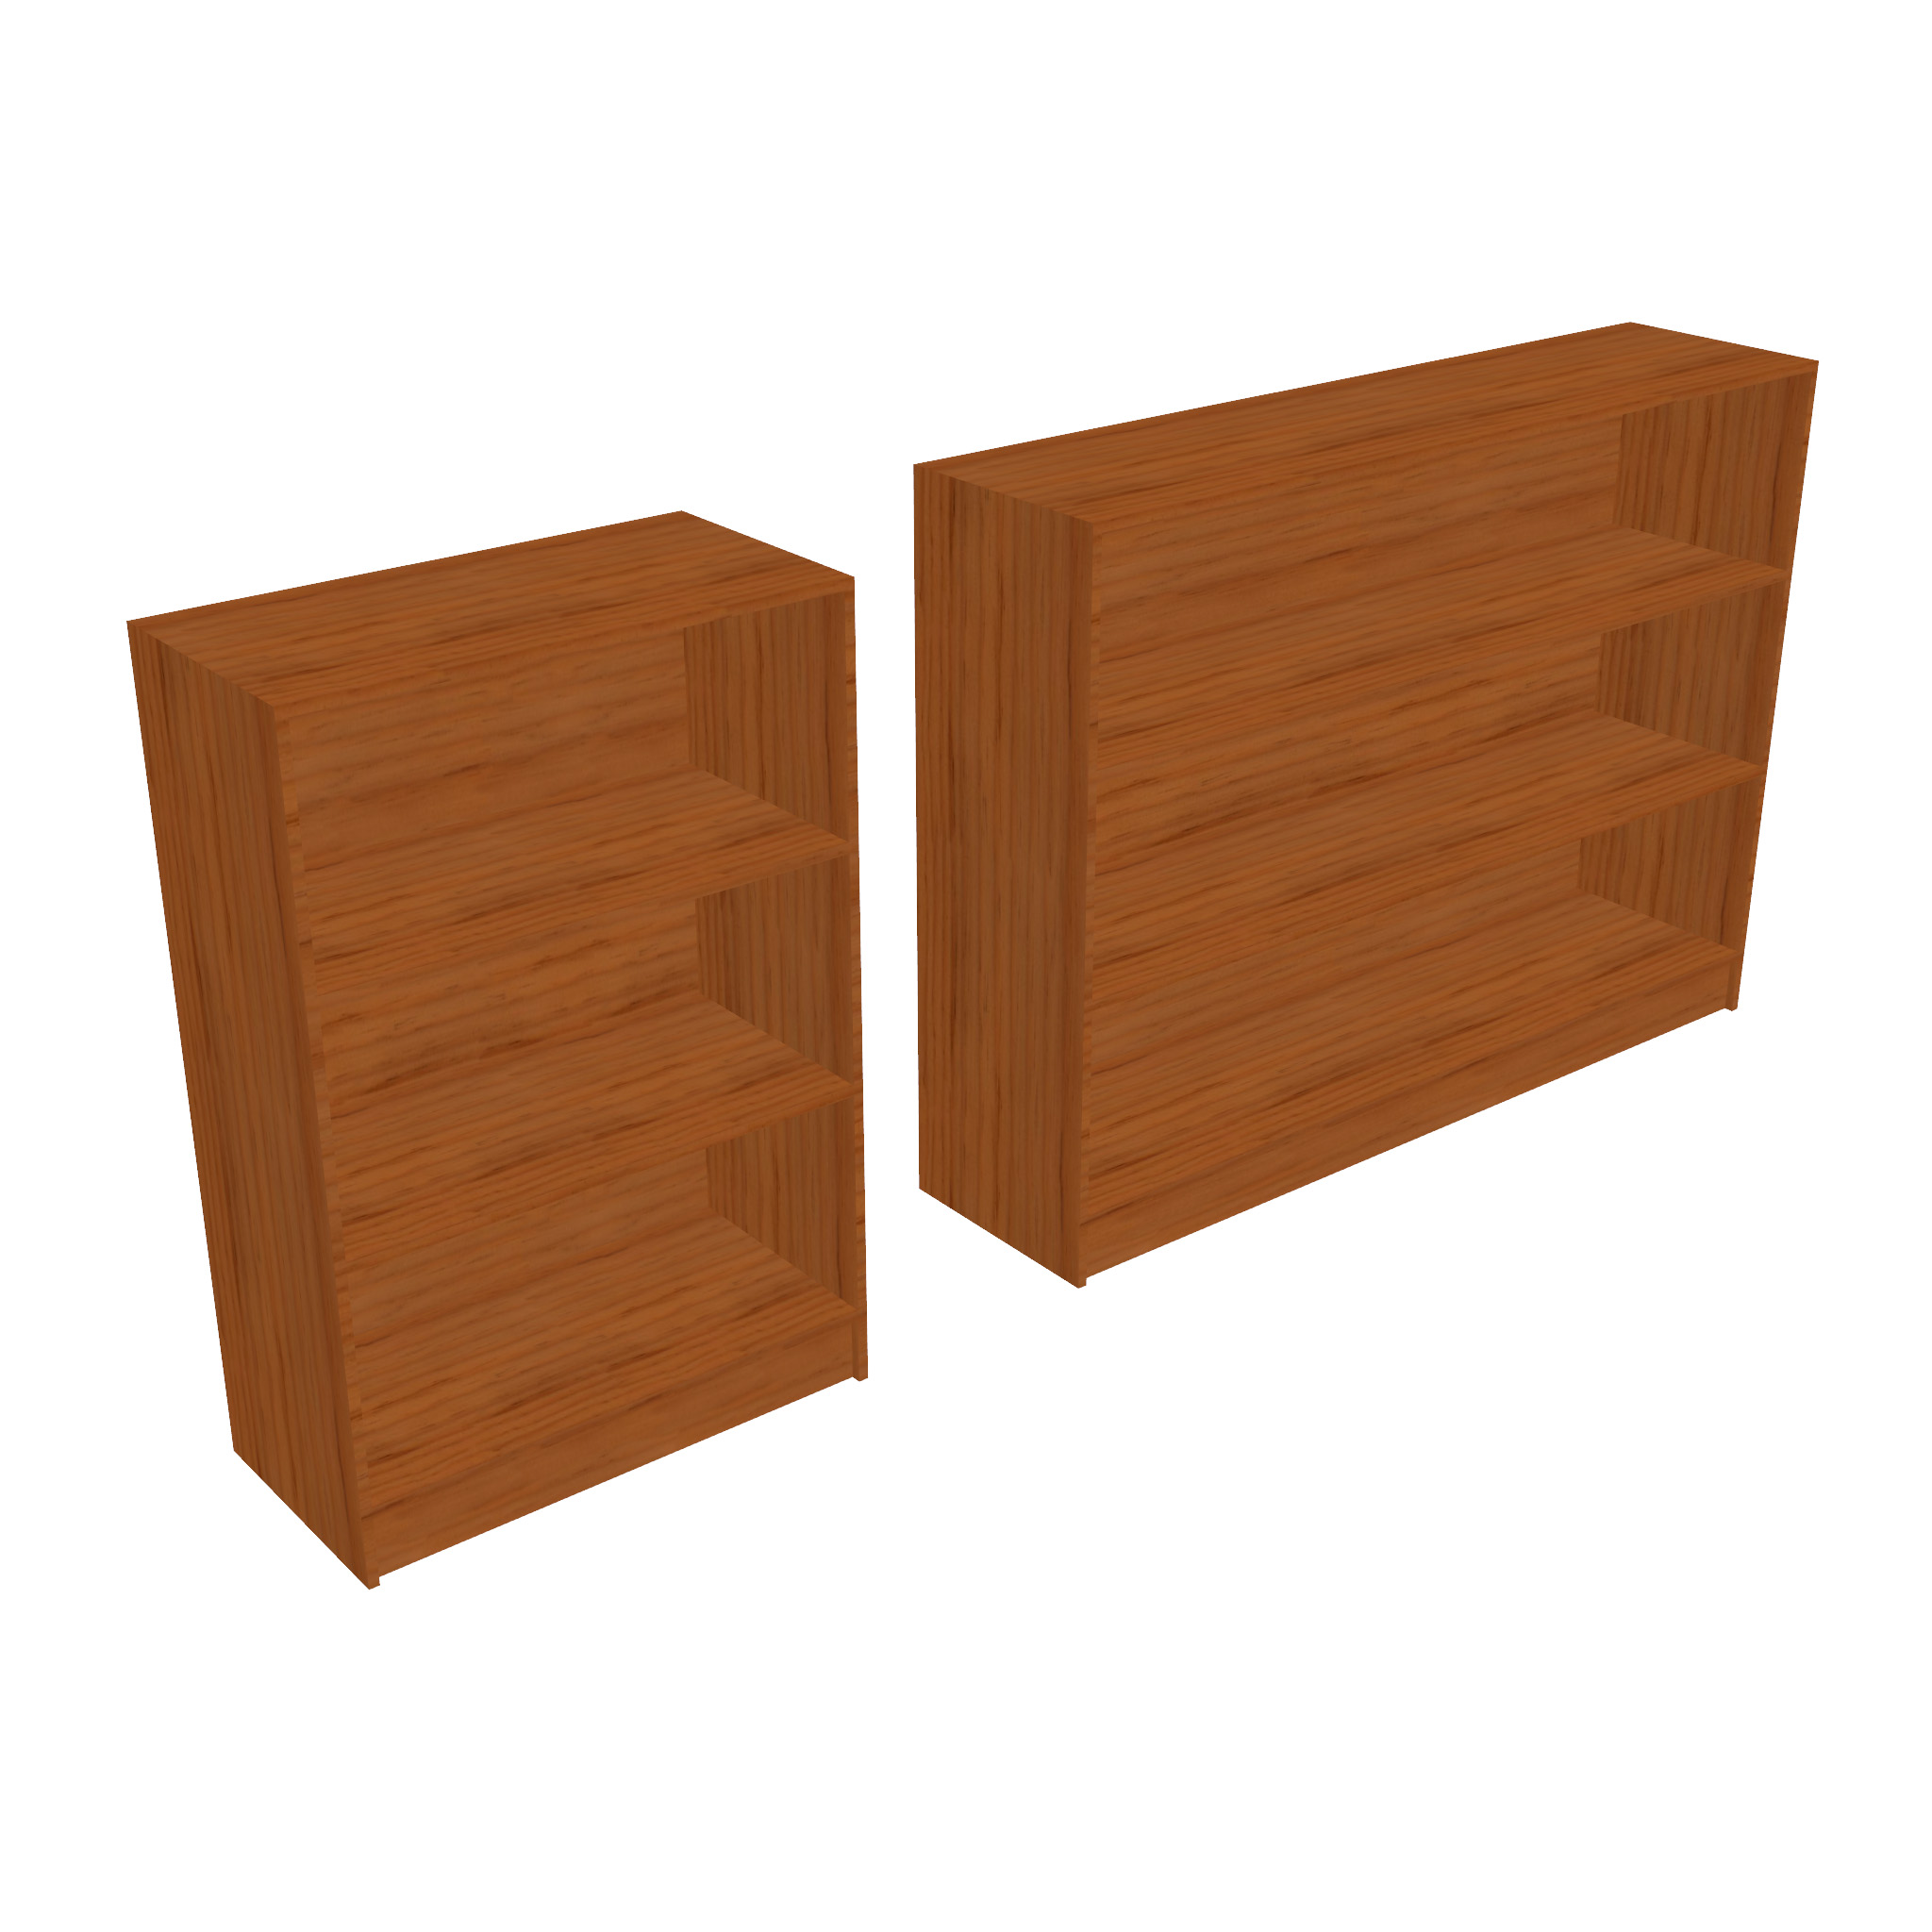 bookcase – two sizes 3d model 3ds fbx ma mb obj 271542